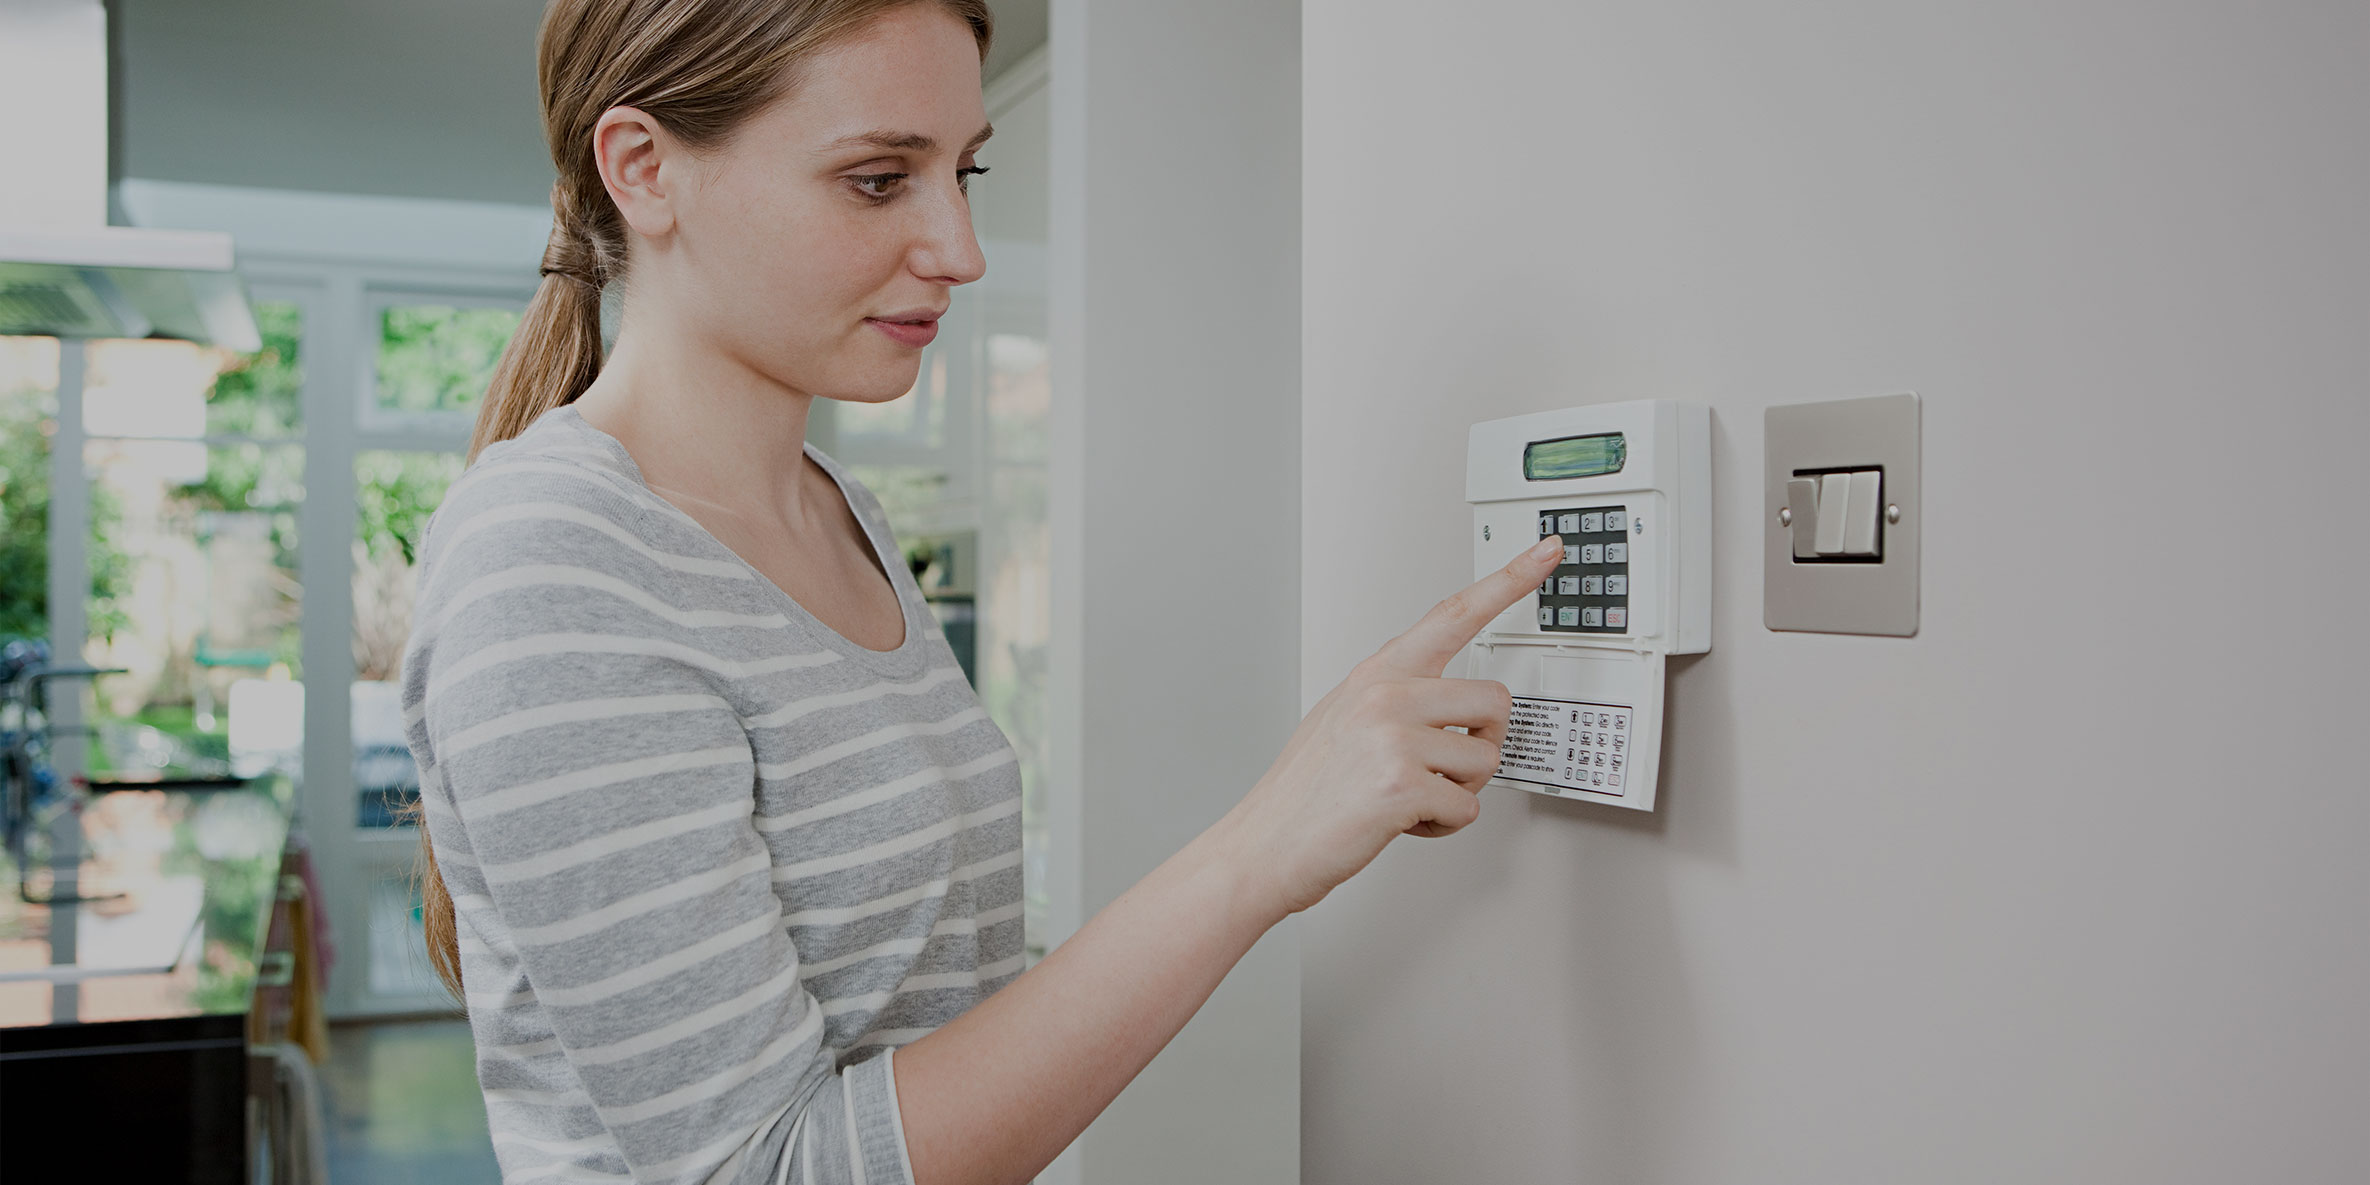 How to Tell When Your Home Security System Isn't Working Properly